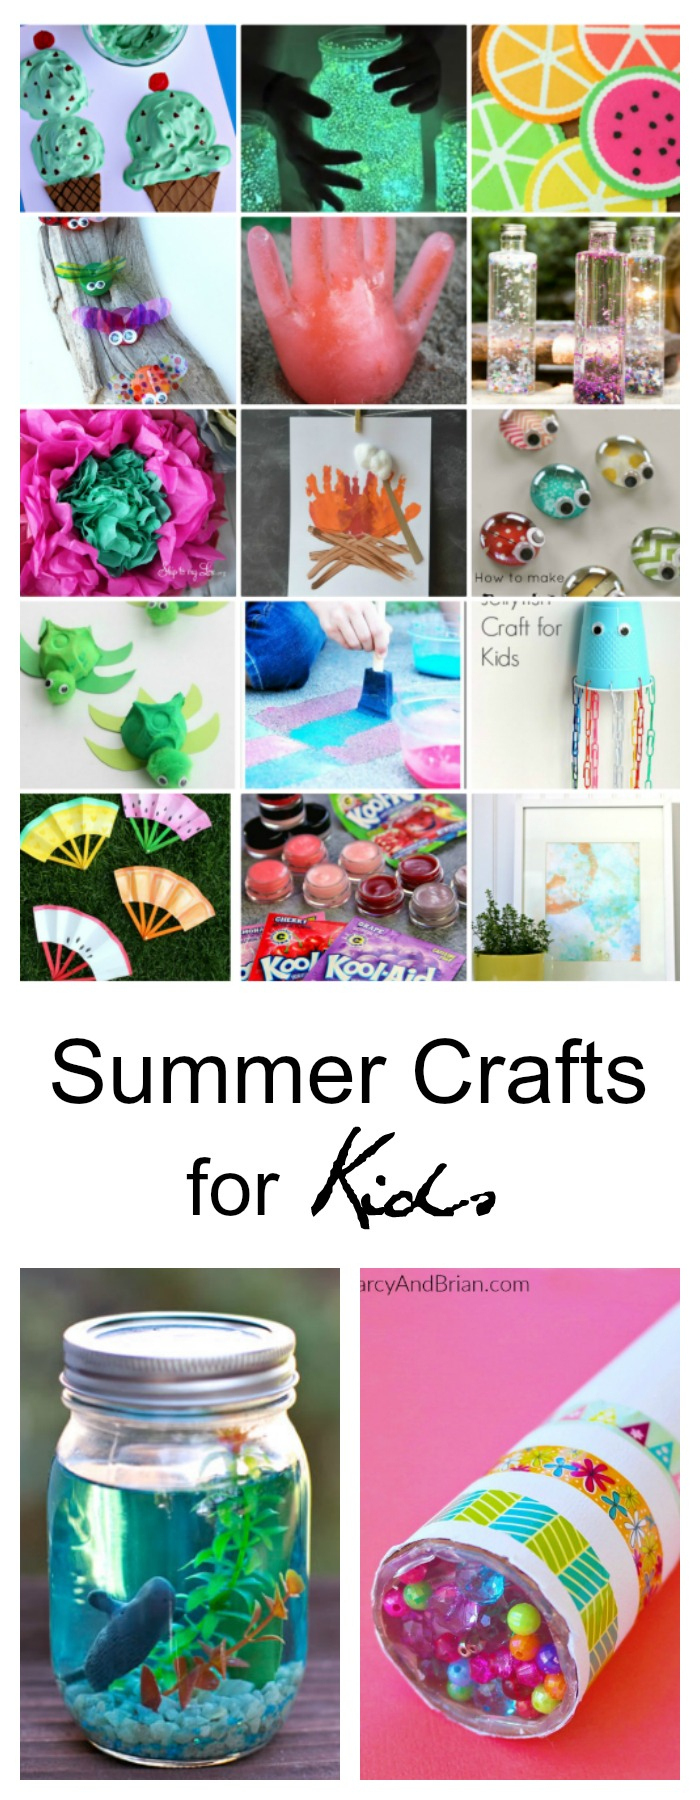 10 Unique Ideas For Crafts For Kids 40 creative summer crafts for kids that are really fun